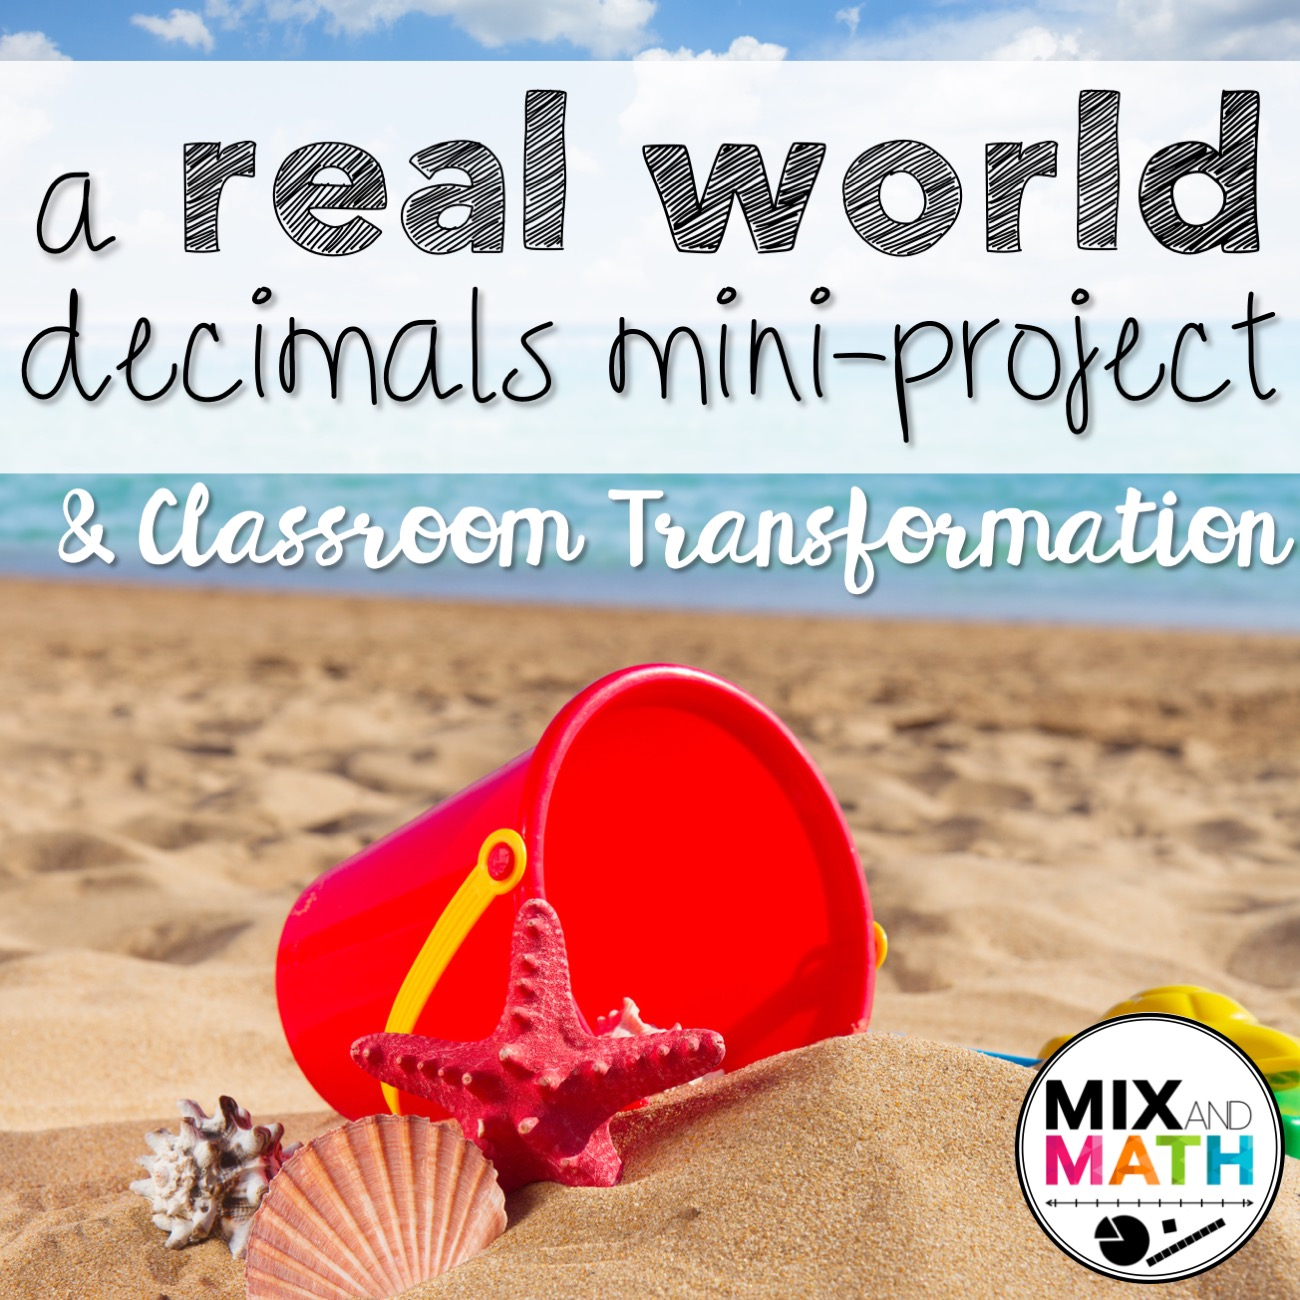 add, subtract, multiply and divide decimals - Go on a road trip to the beach and practice adding, subtracting, multiplying, and dividing decimals.